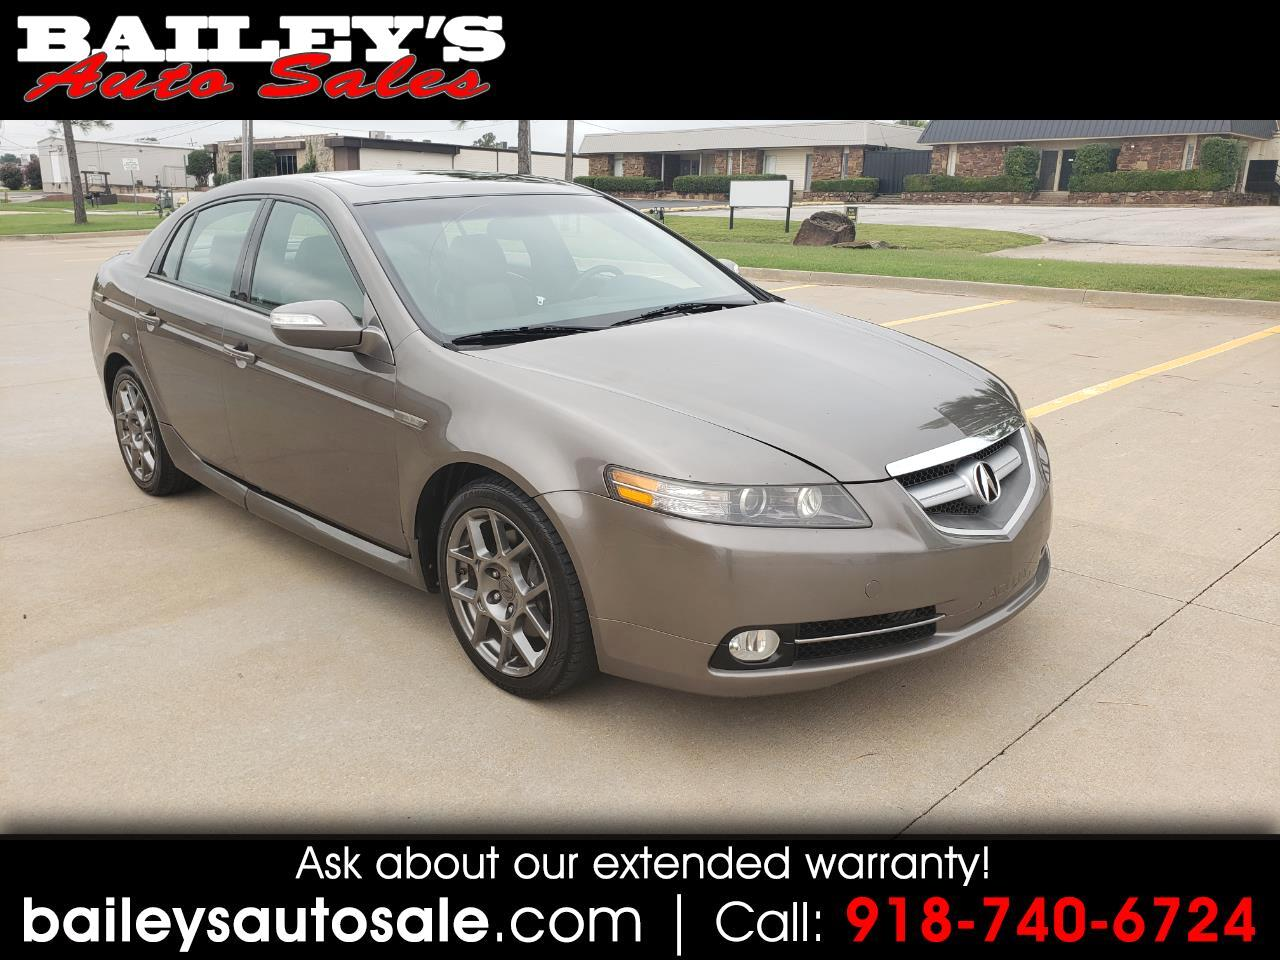 Acura TL 4dr Sdn 3.2L Type S w/Navigation 2007